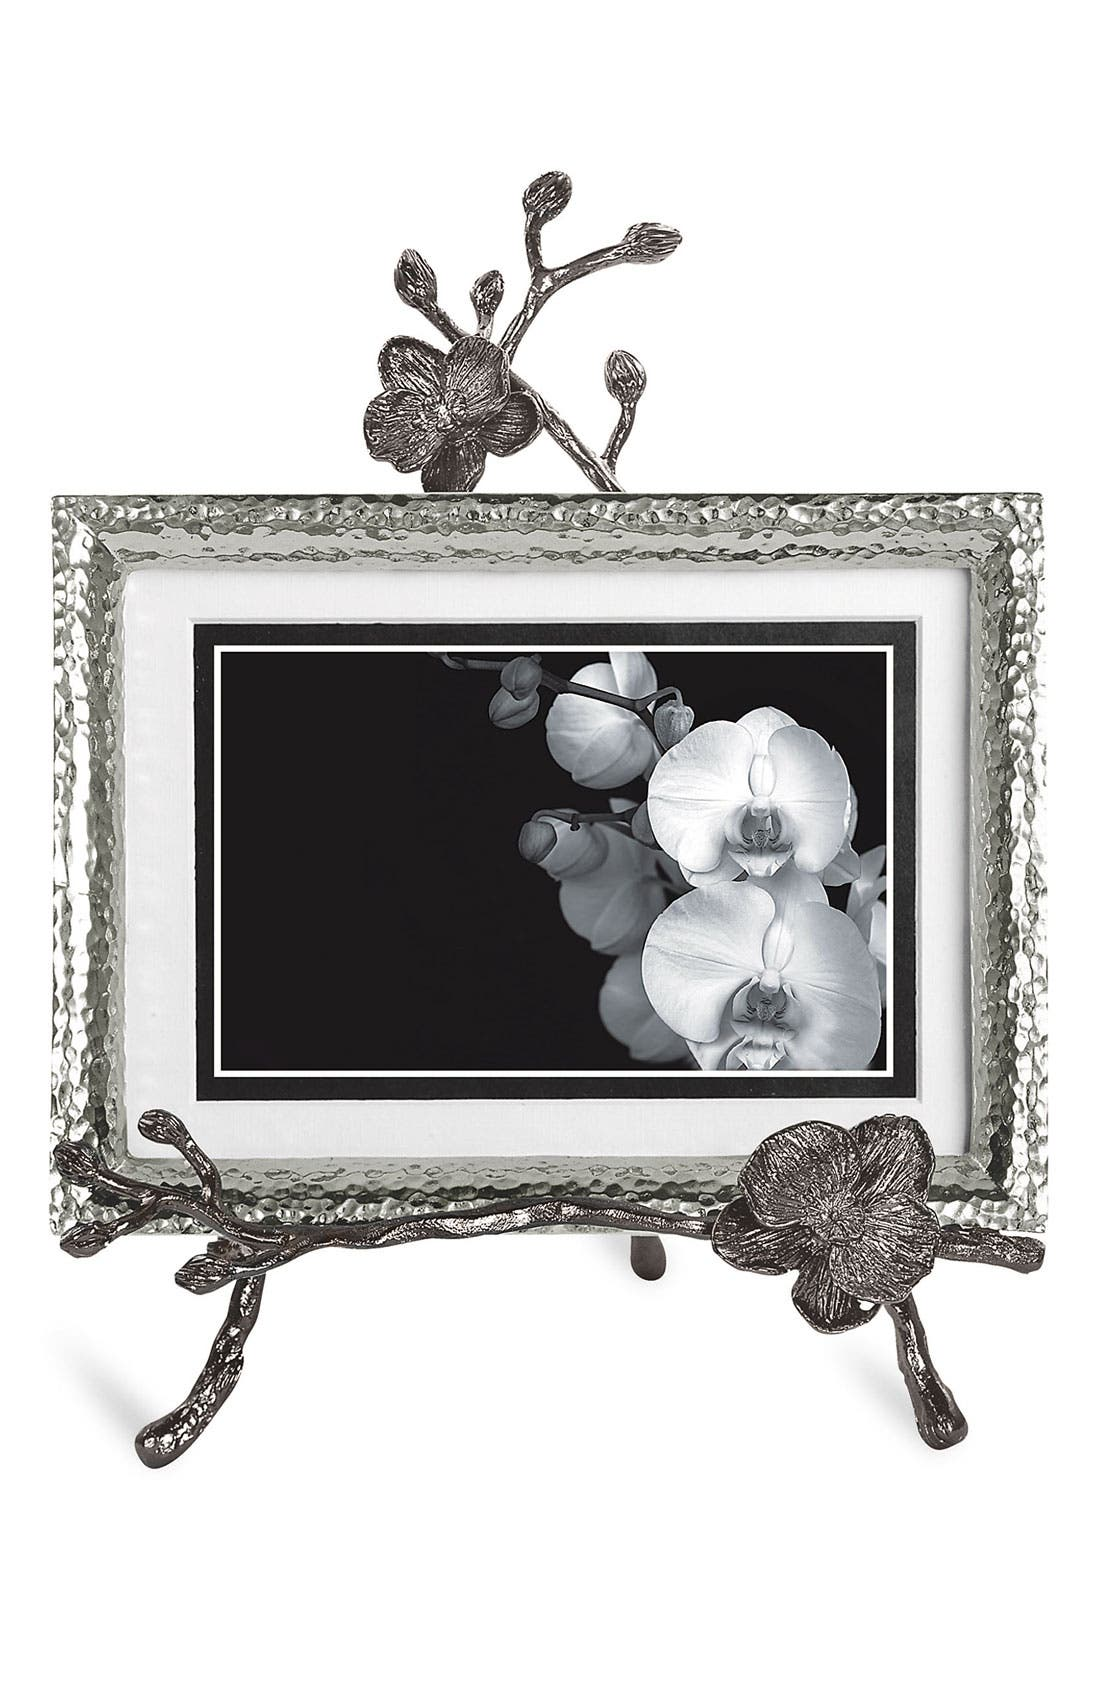 main image michael aram black orchid convertible easel picture frame